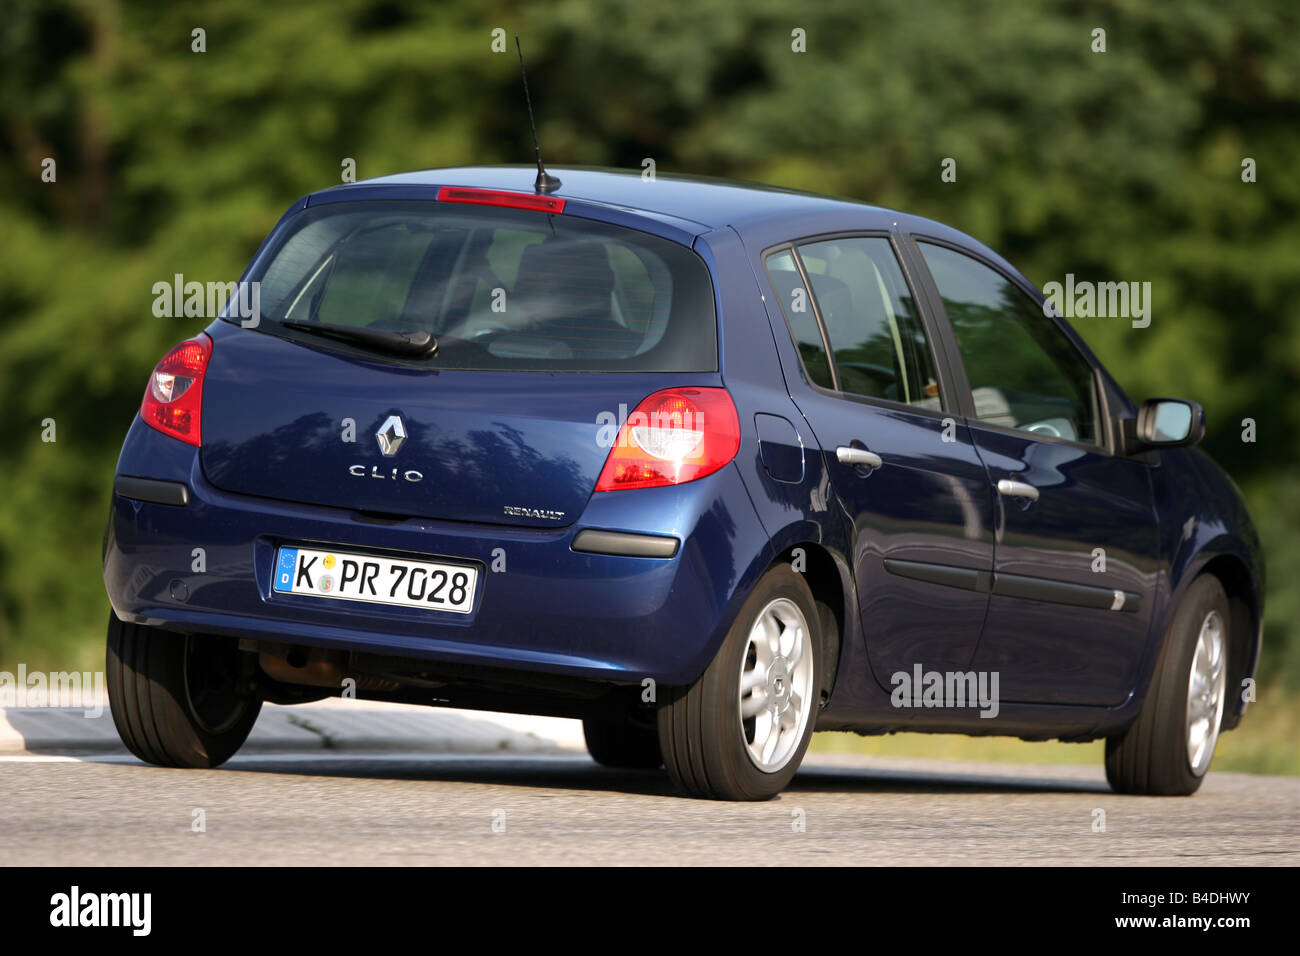 Renault Clio 1 2 16v Edition Dynamique Model Year 2005 Blue Stock